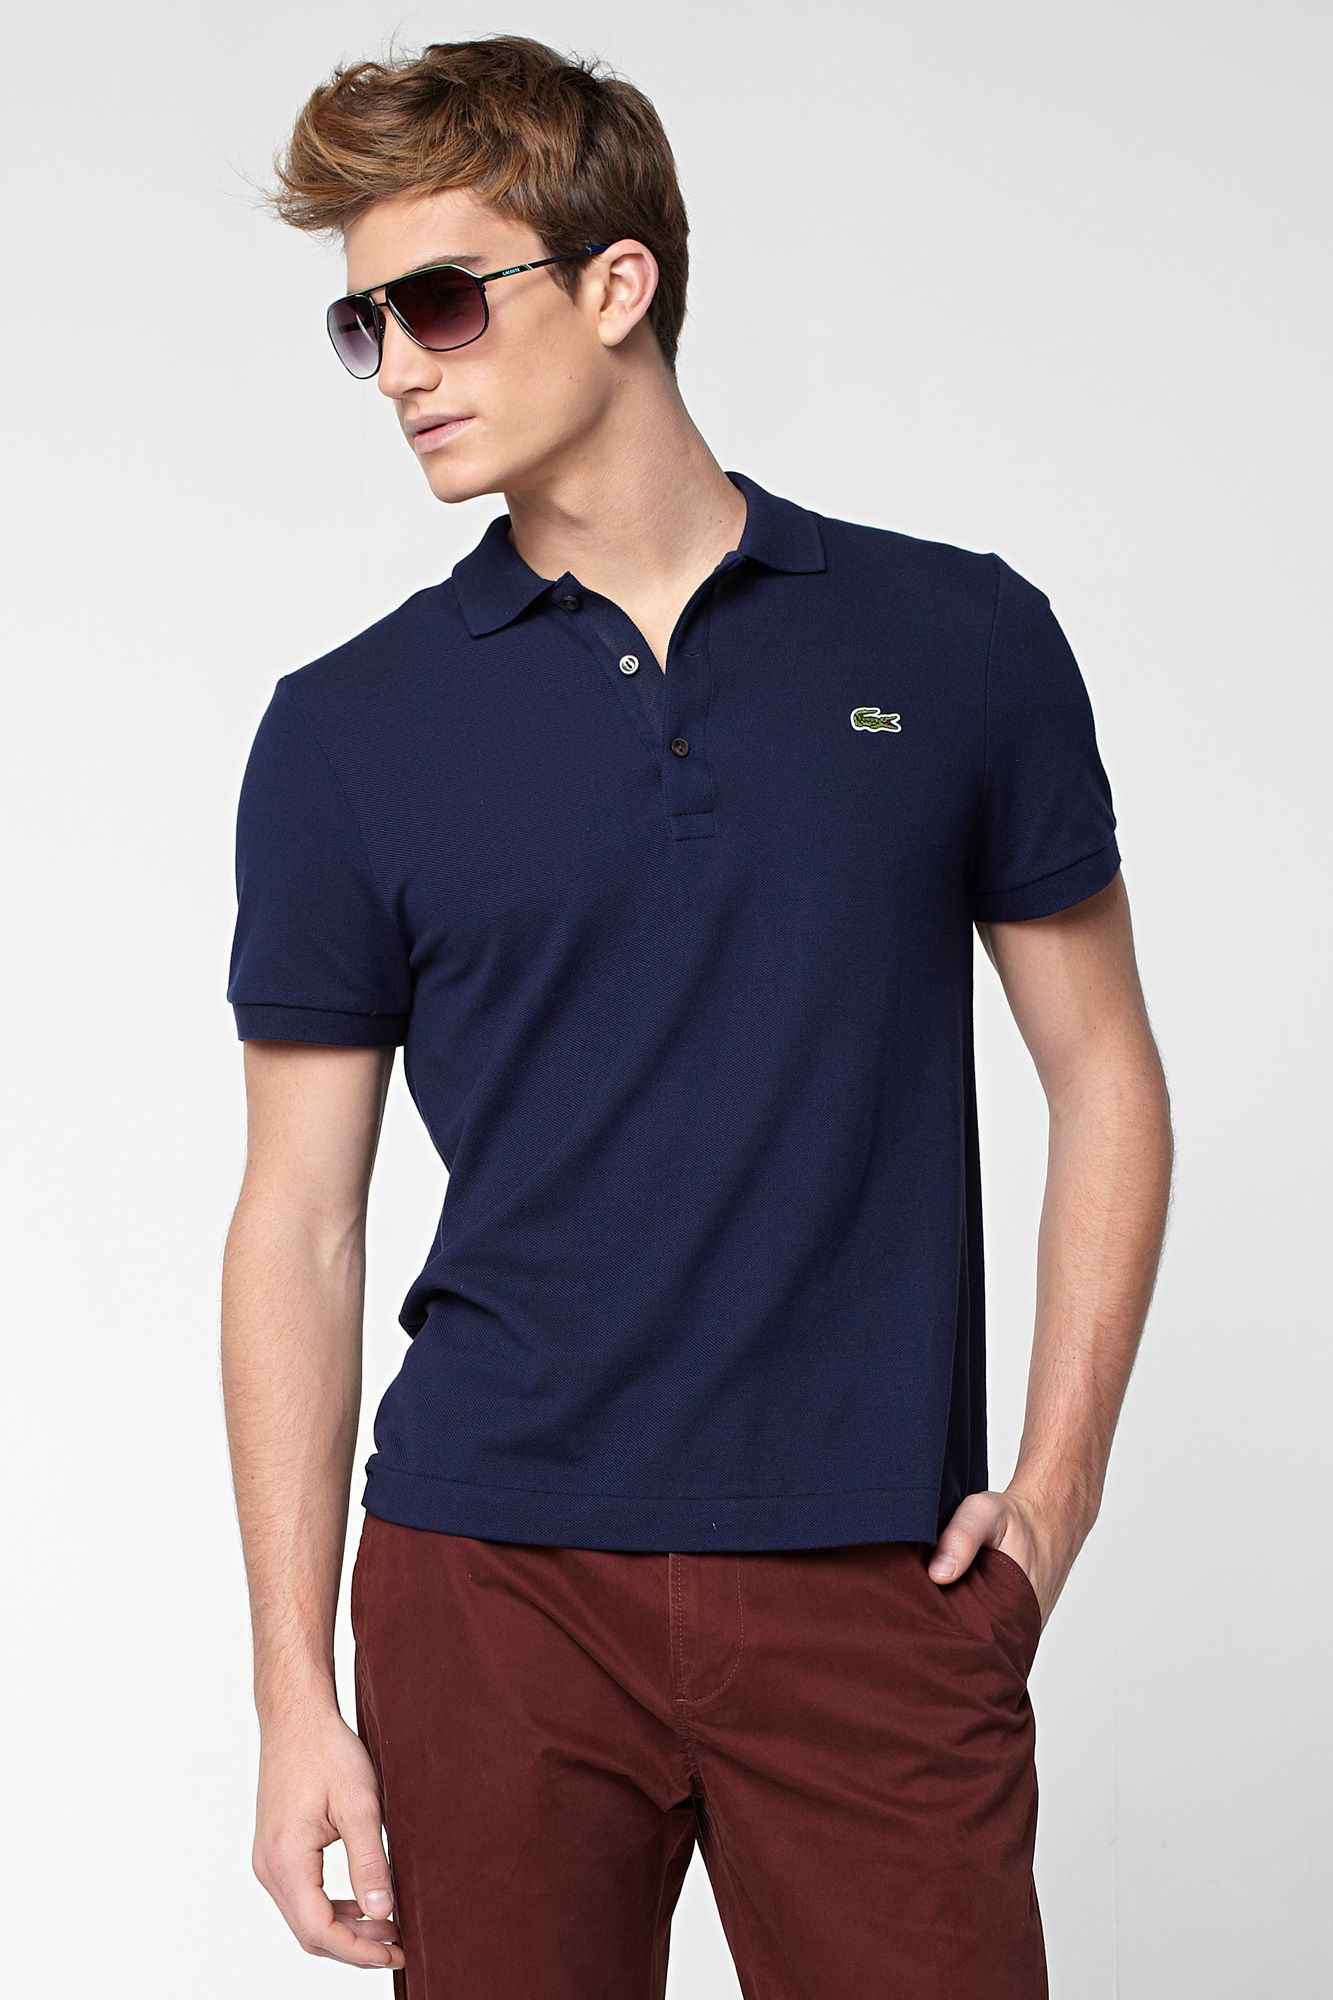 gamesinfomation.com Lacoste Polo Shirt, Short Sleeve Slim Fit Pique Polo  Navy Blue Shirt coupon  gamesinfomation.com 283023e329